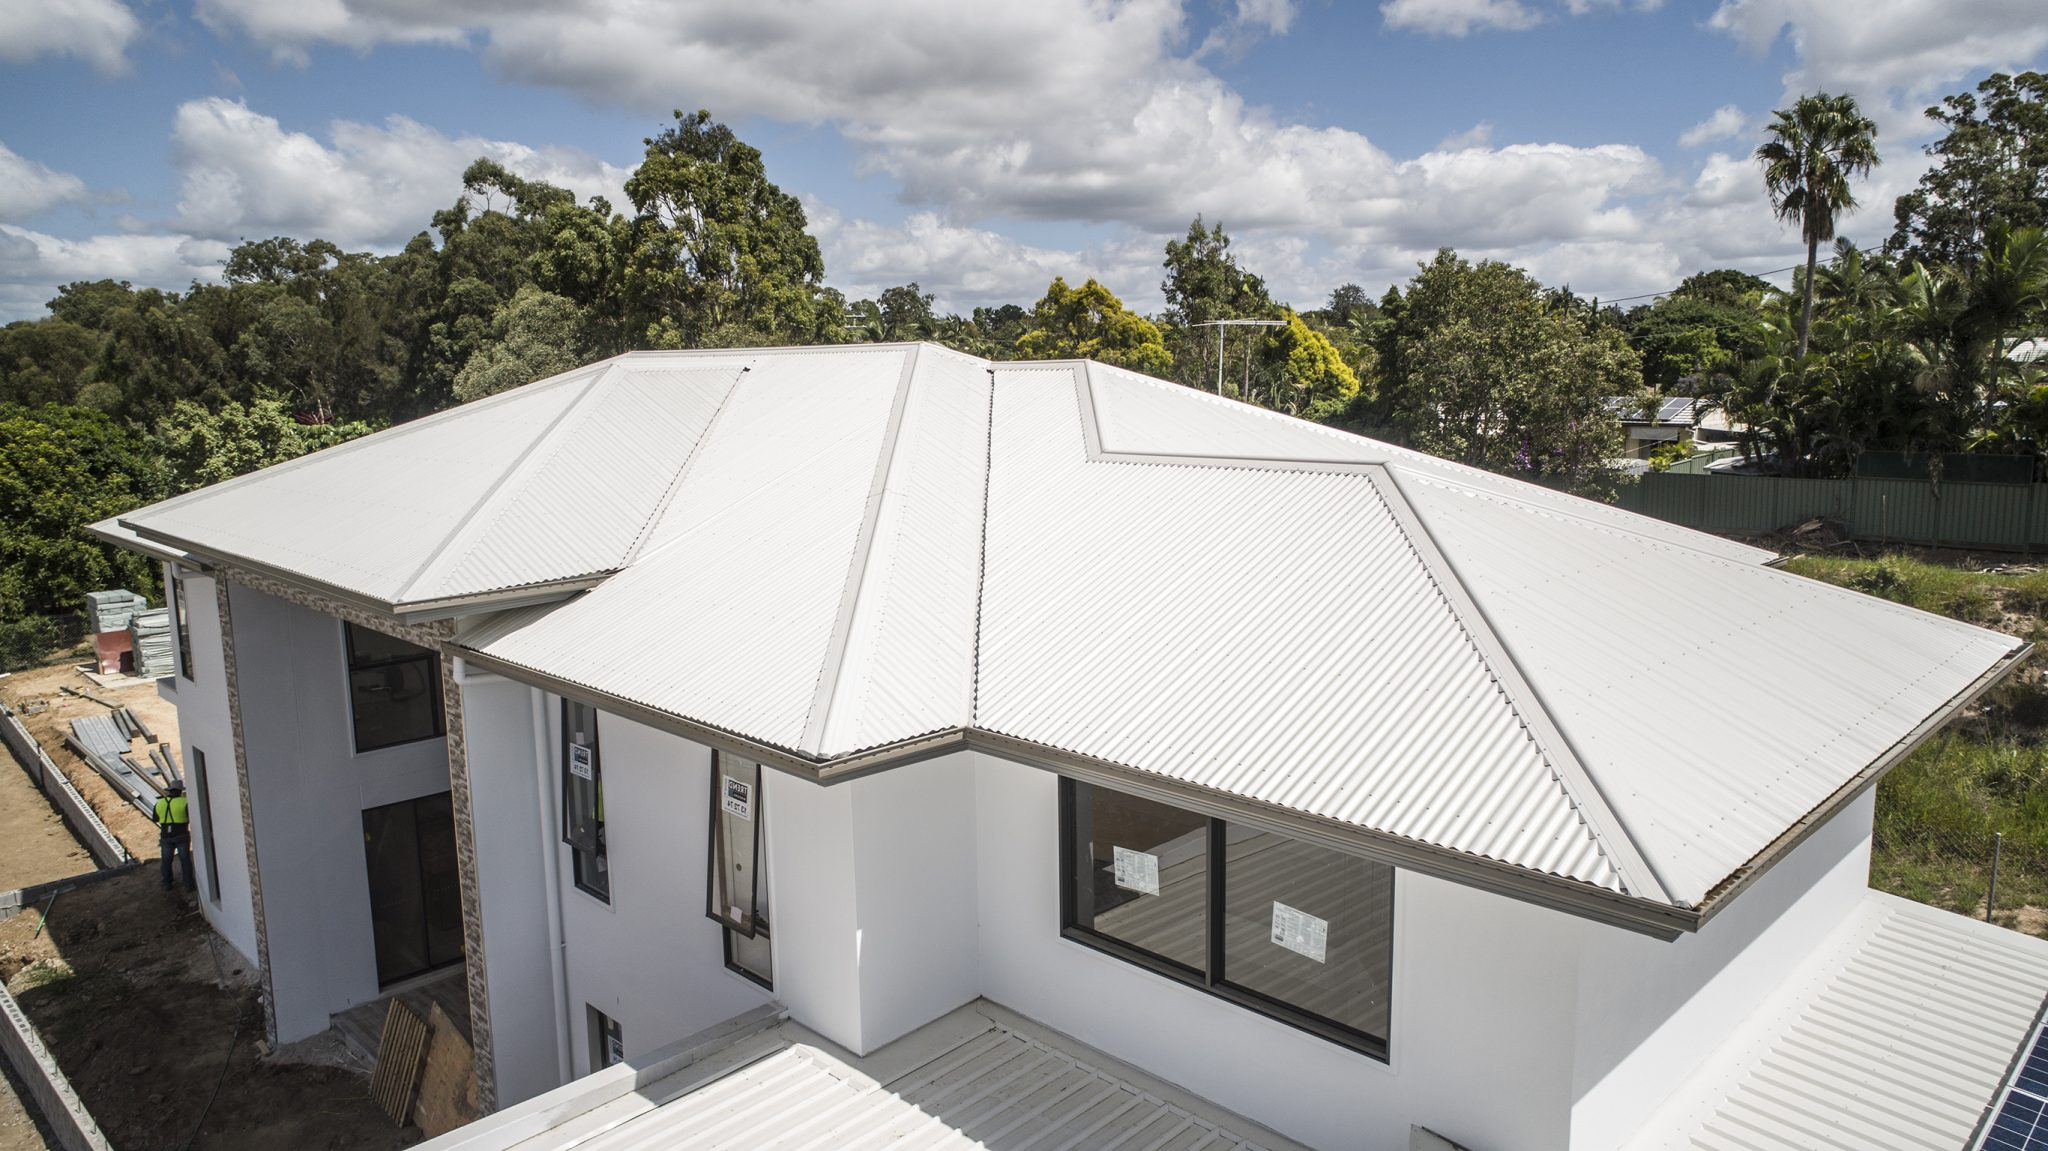 Duplex house under construction with Colorbond® metal roofing